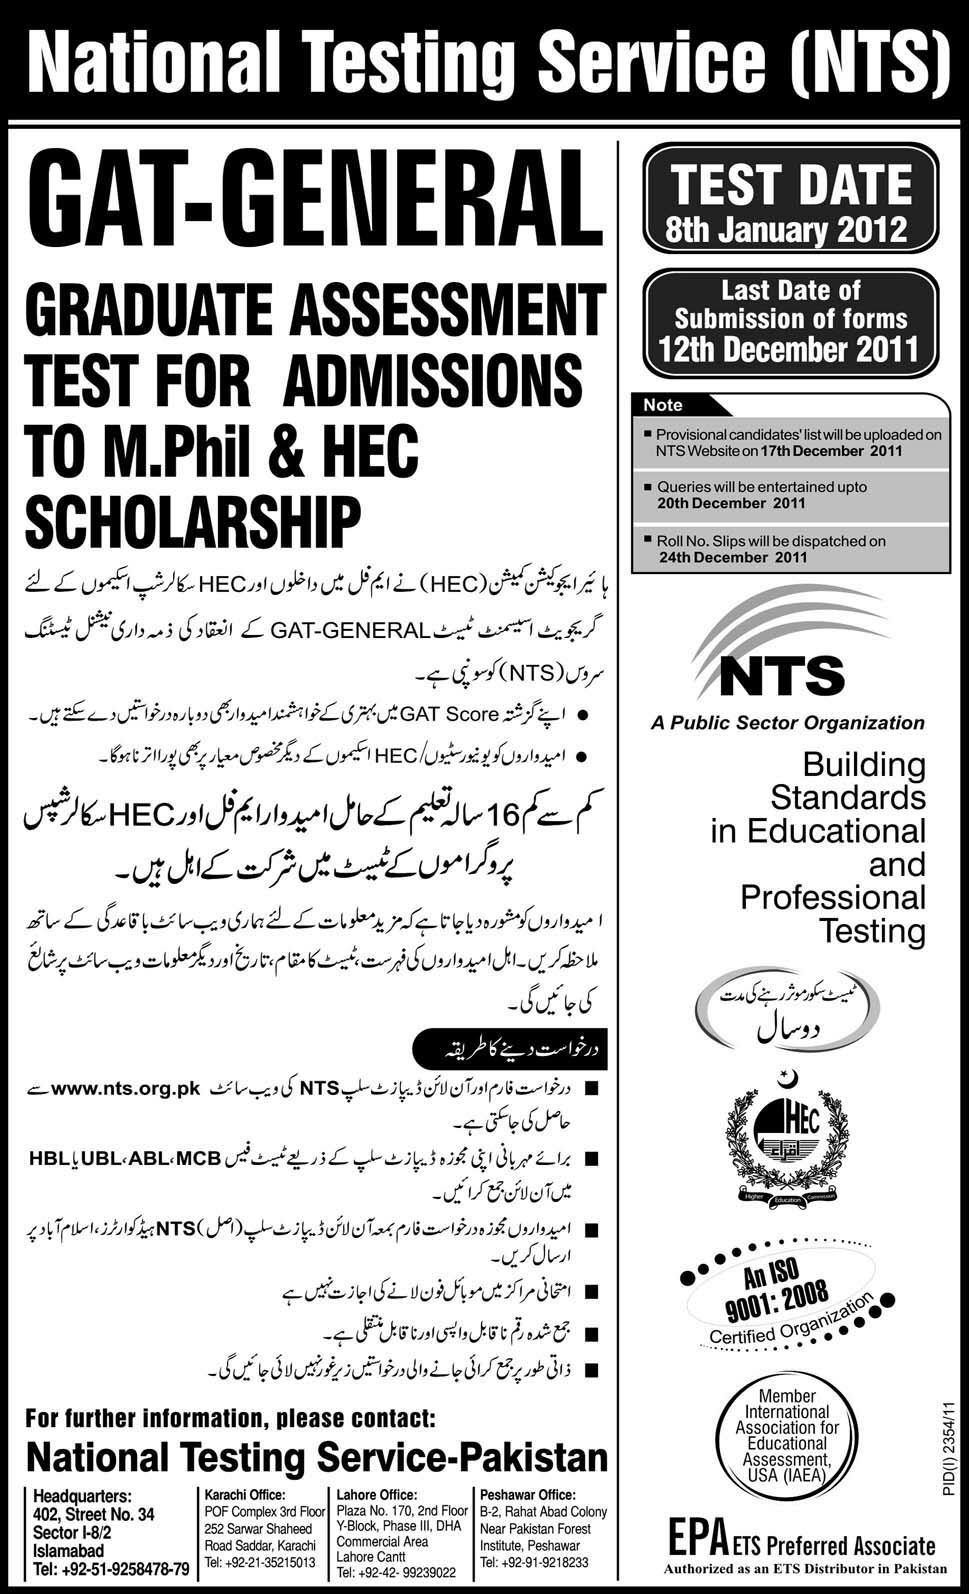 1101392982 1 GAT General Test 2012 for Admissions to M.Phil, HEC Scholarships